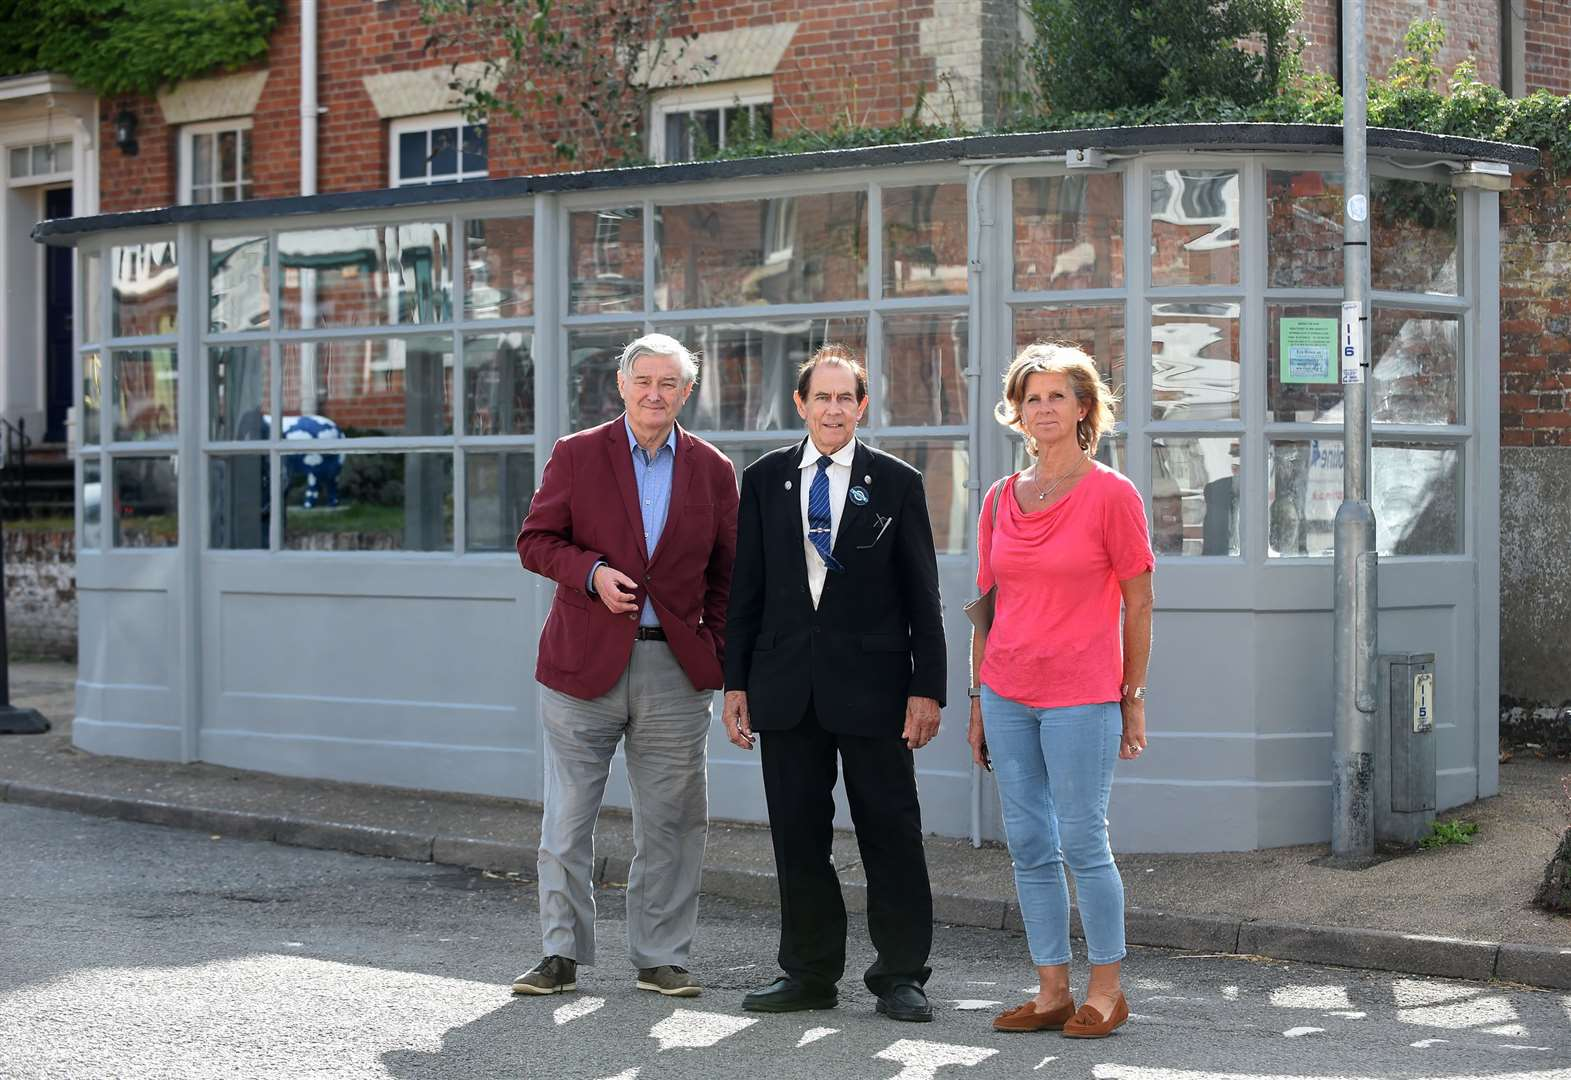 Tramcar-shaped bus shelter restored to its former glory